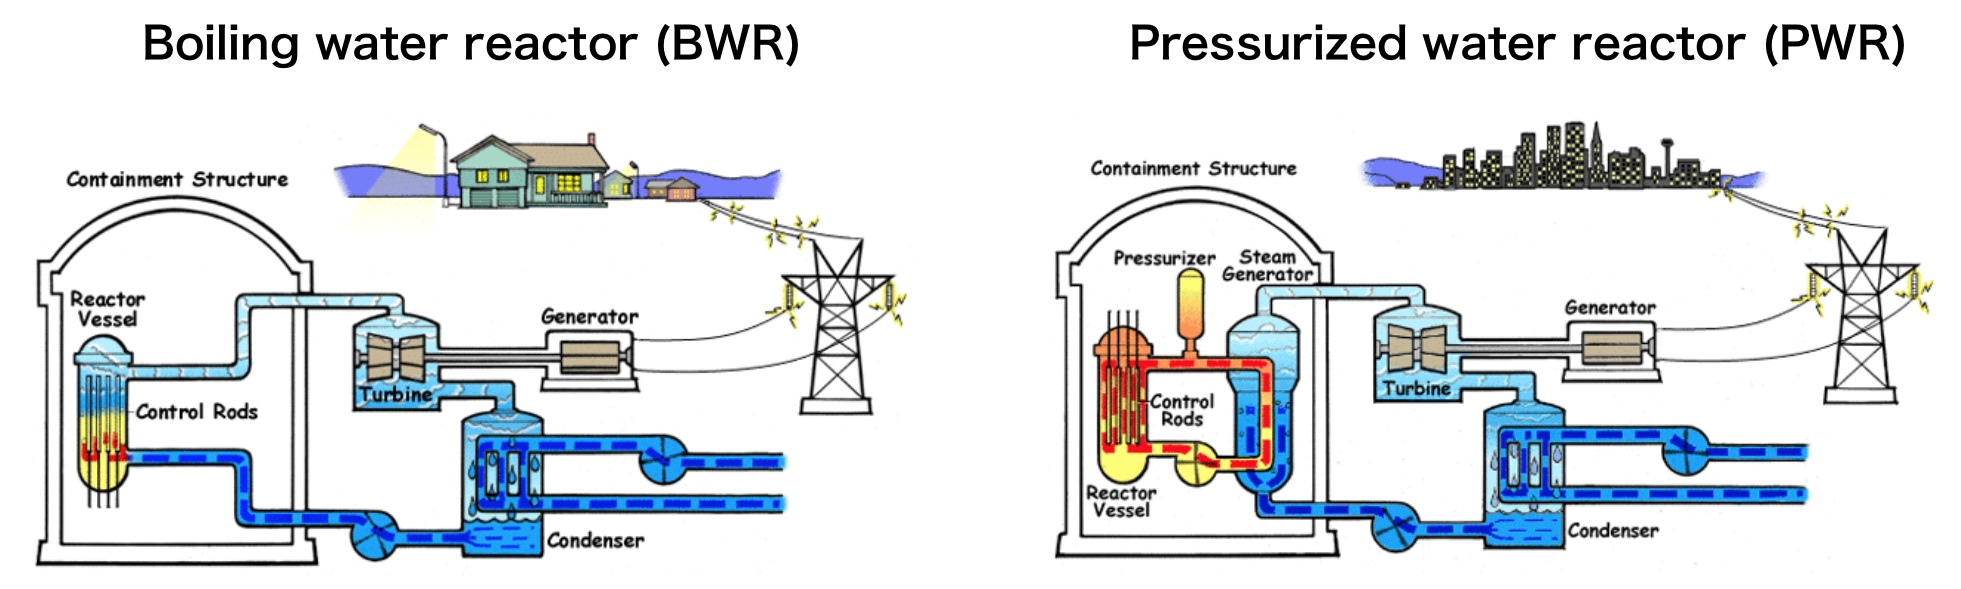 hight resolution of commercial light water nuclear reactor designs source nrc